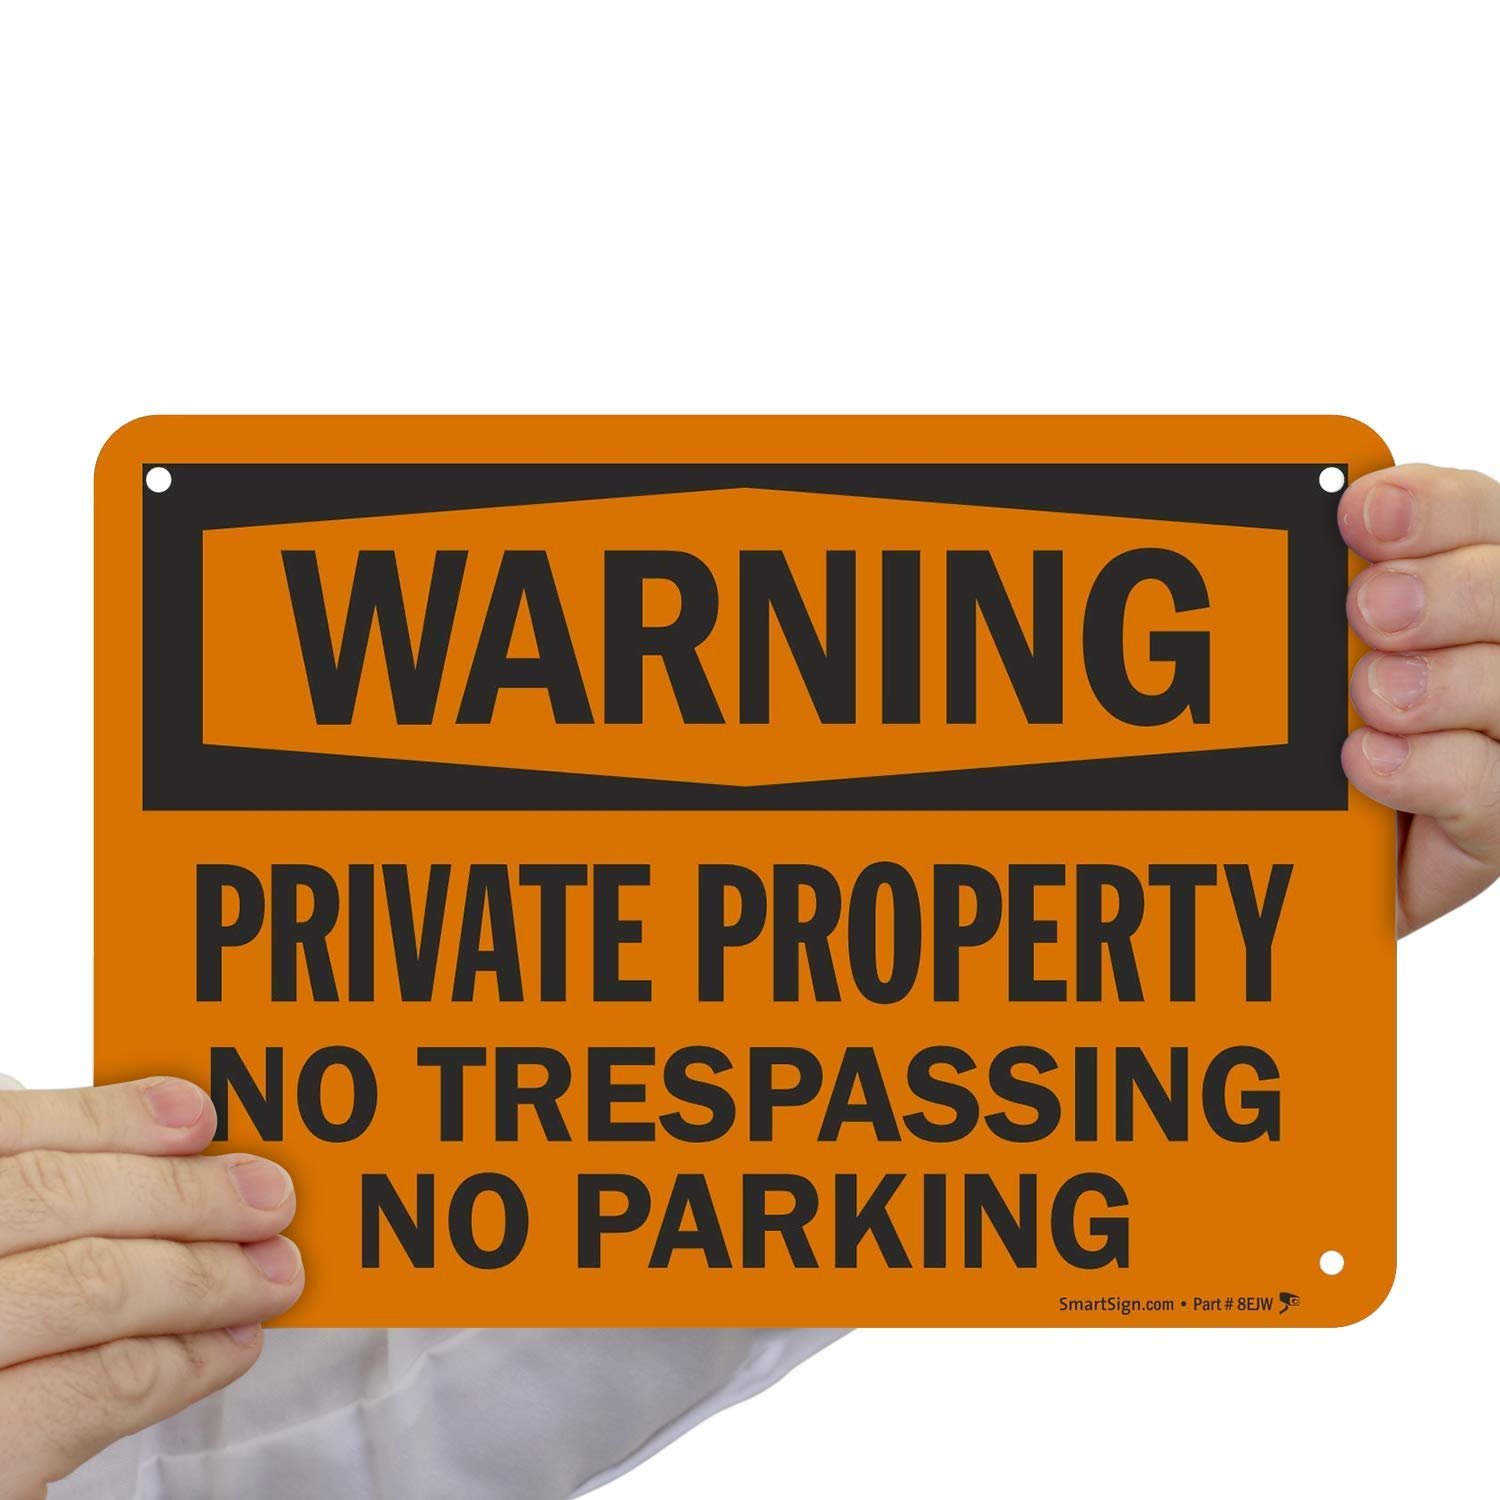 Private Property Signage Durable Laminated Vinyl//Aluminum 040 by Graphical Warehouse 12 x 18 Private Property No Trespassing Sign Easy Mounting Trespass Warning